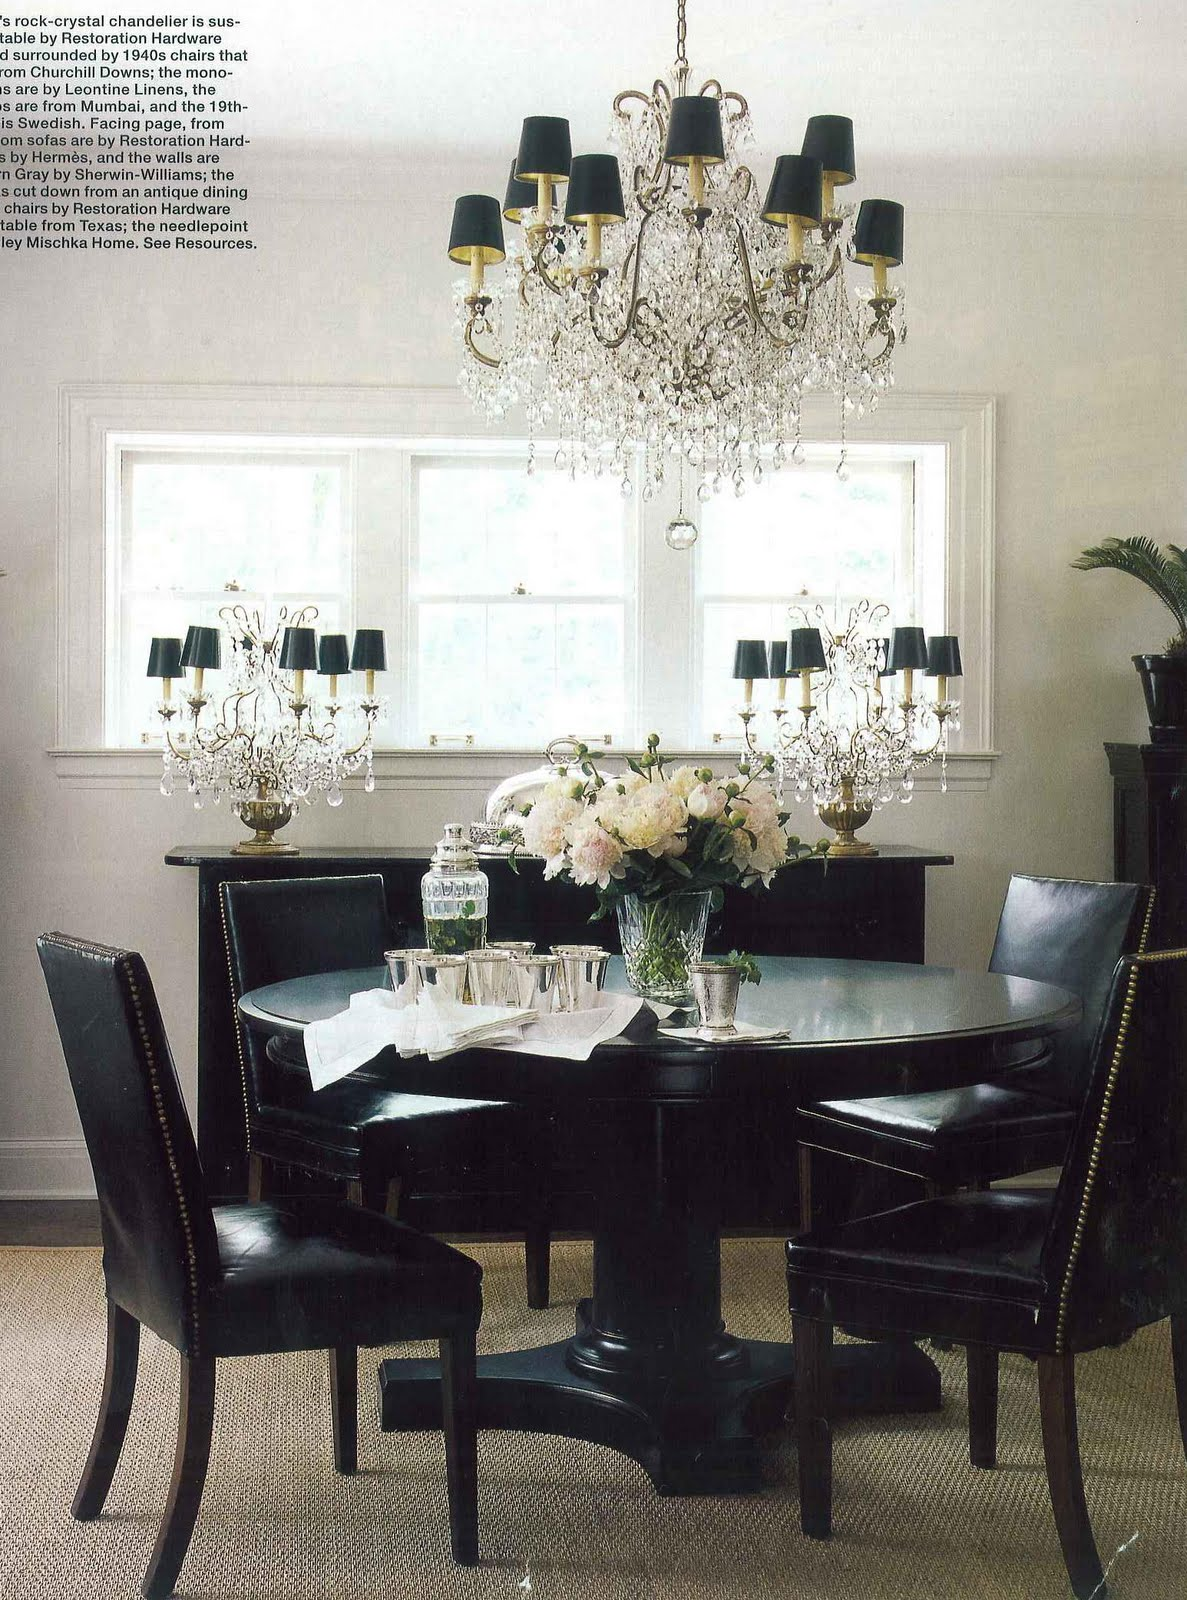 Remarkable Black and White Dining Room 1187 x 1600 · 352 kB · jpeg